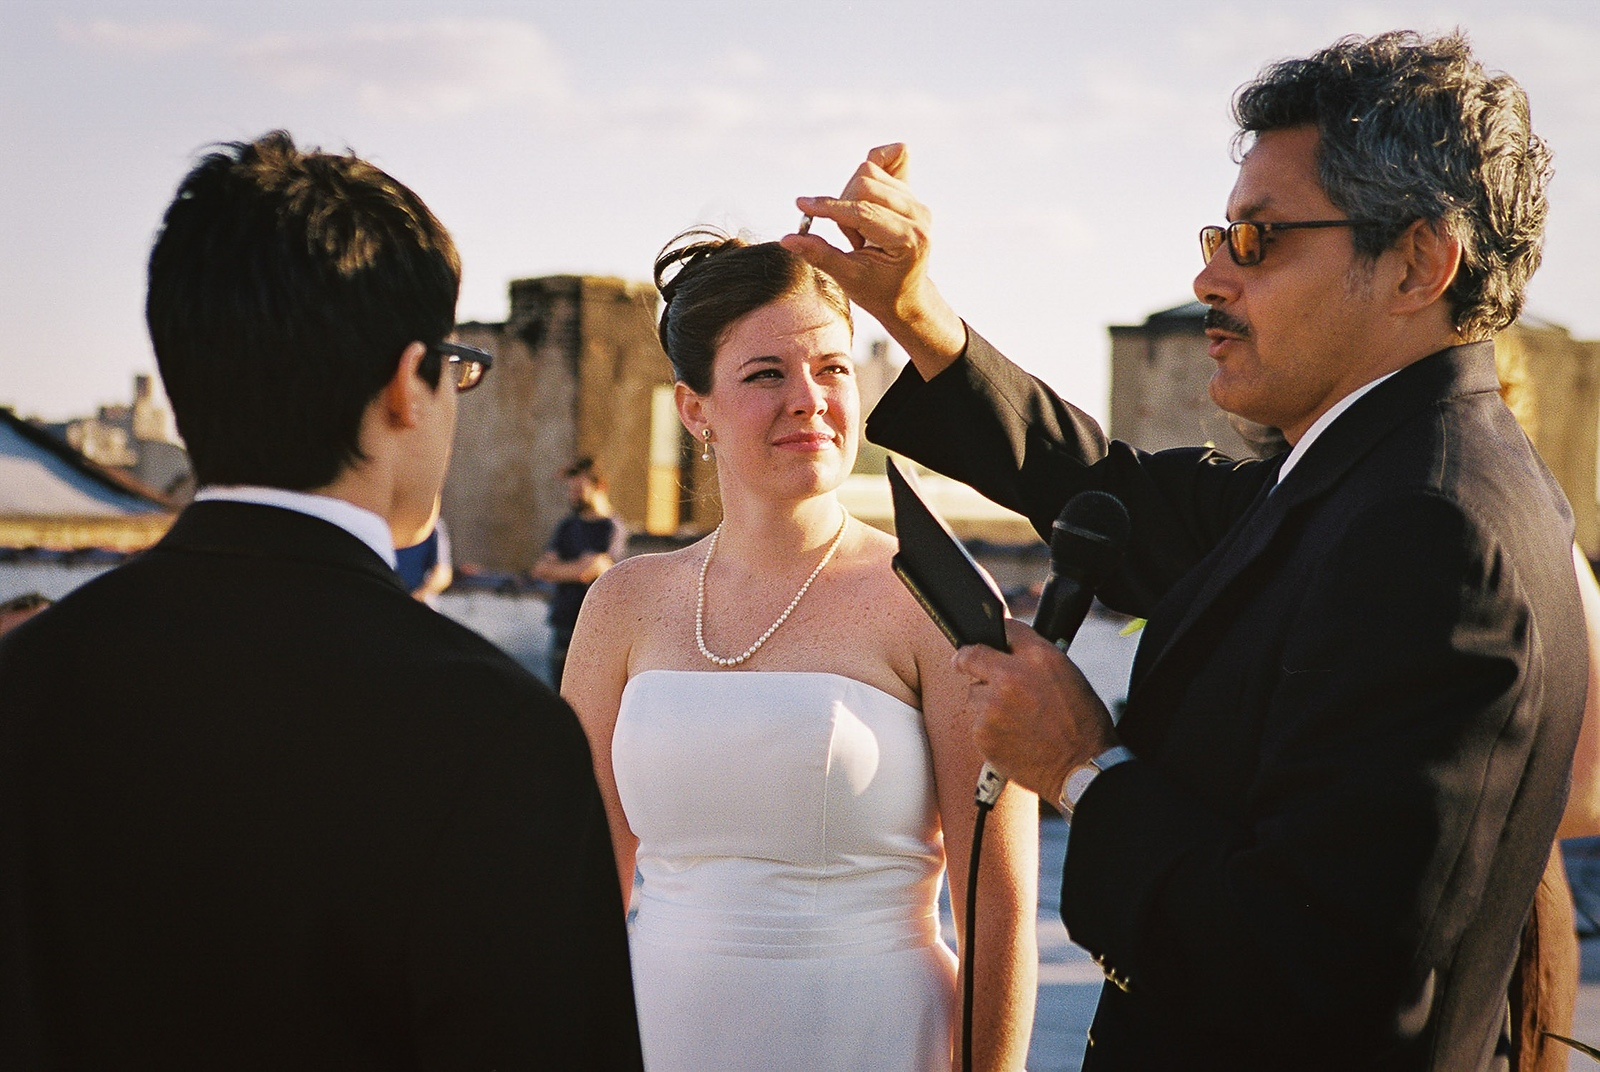 pastor holding up wedding band during ceremony